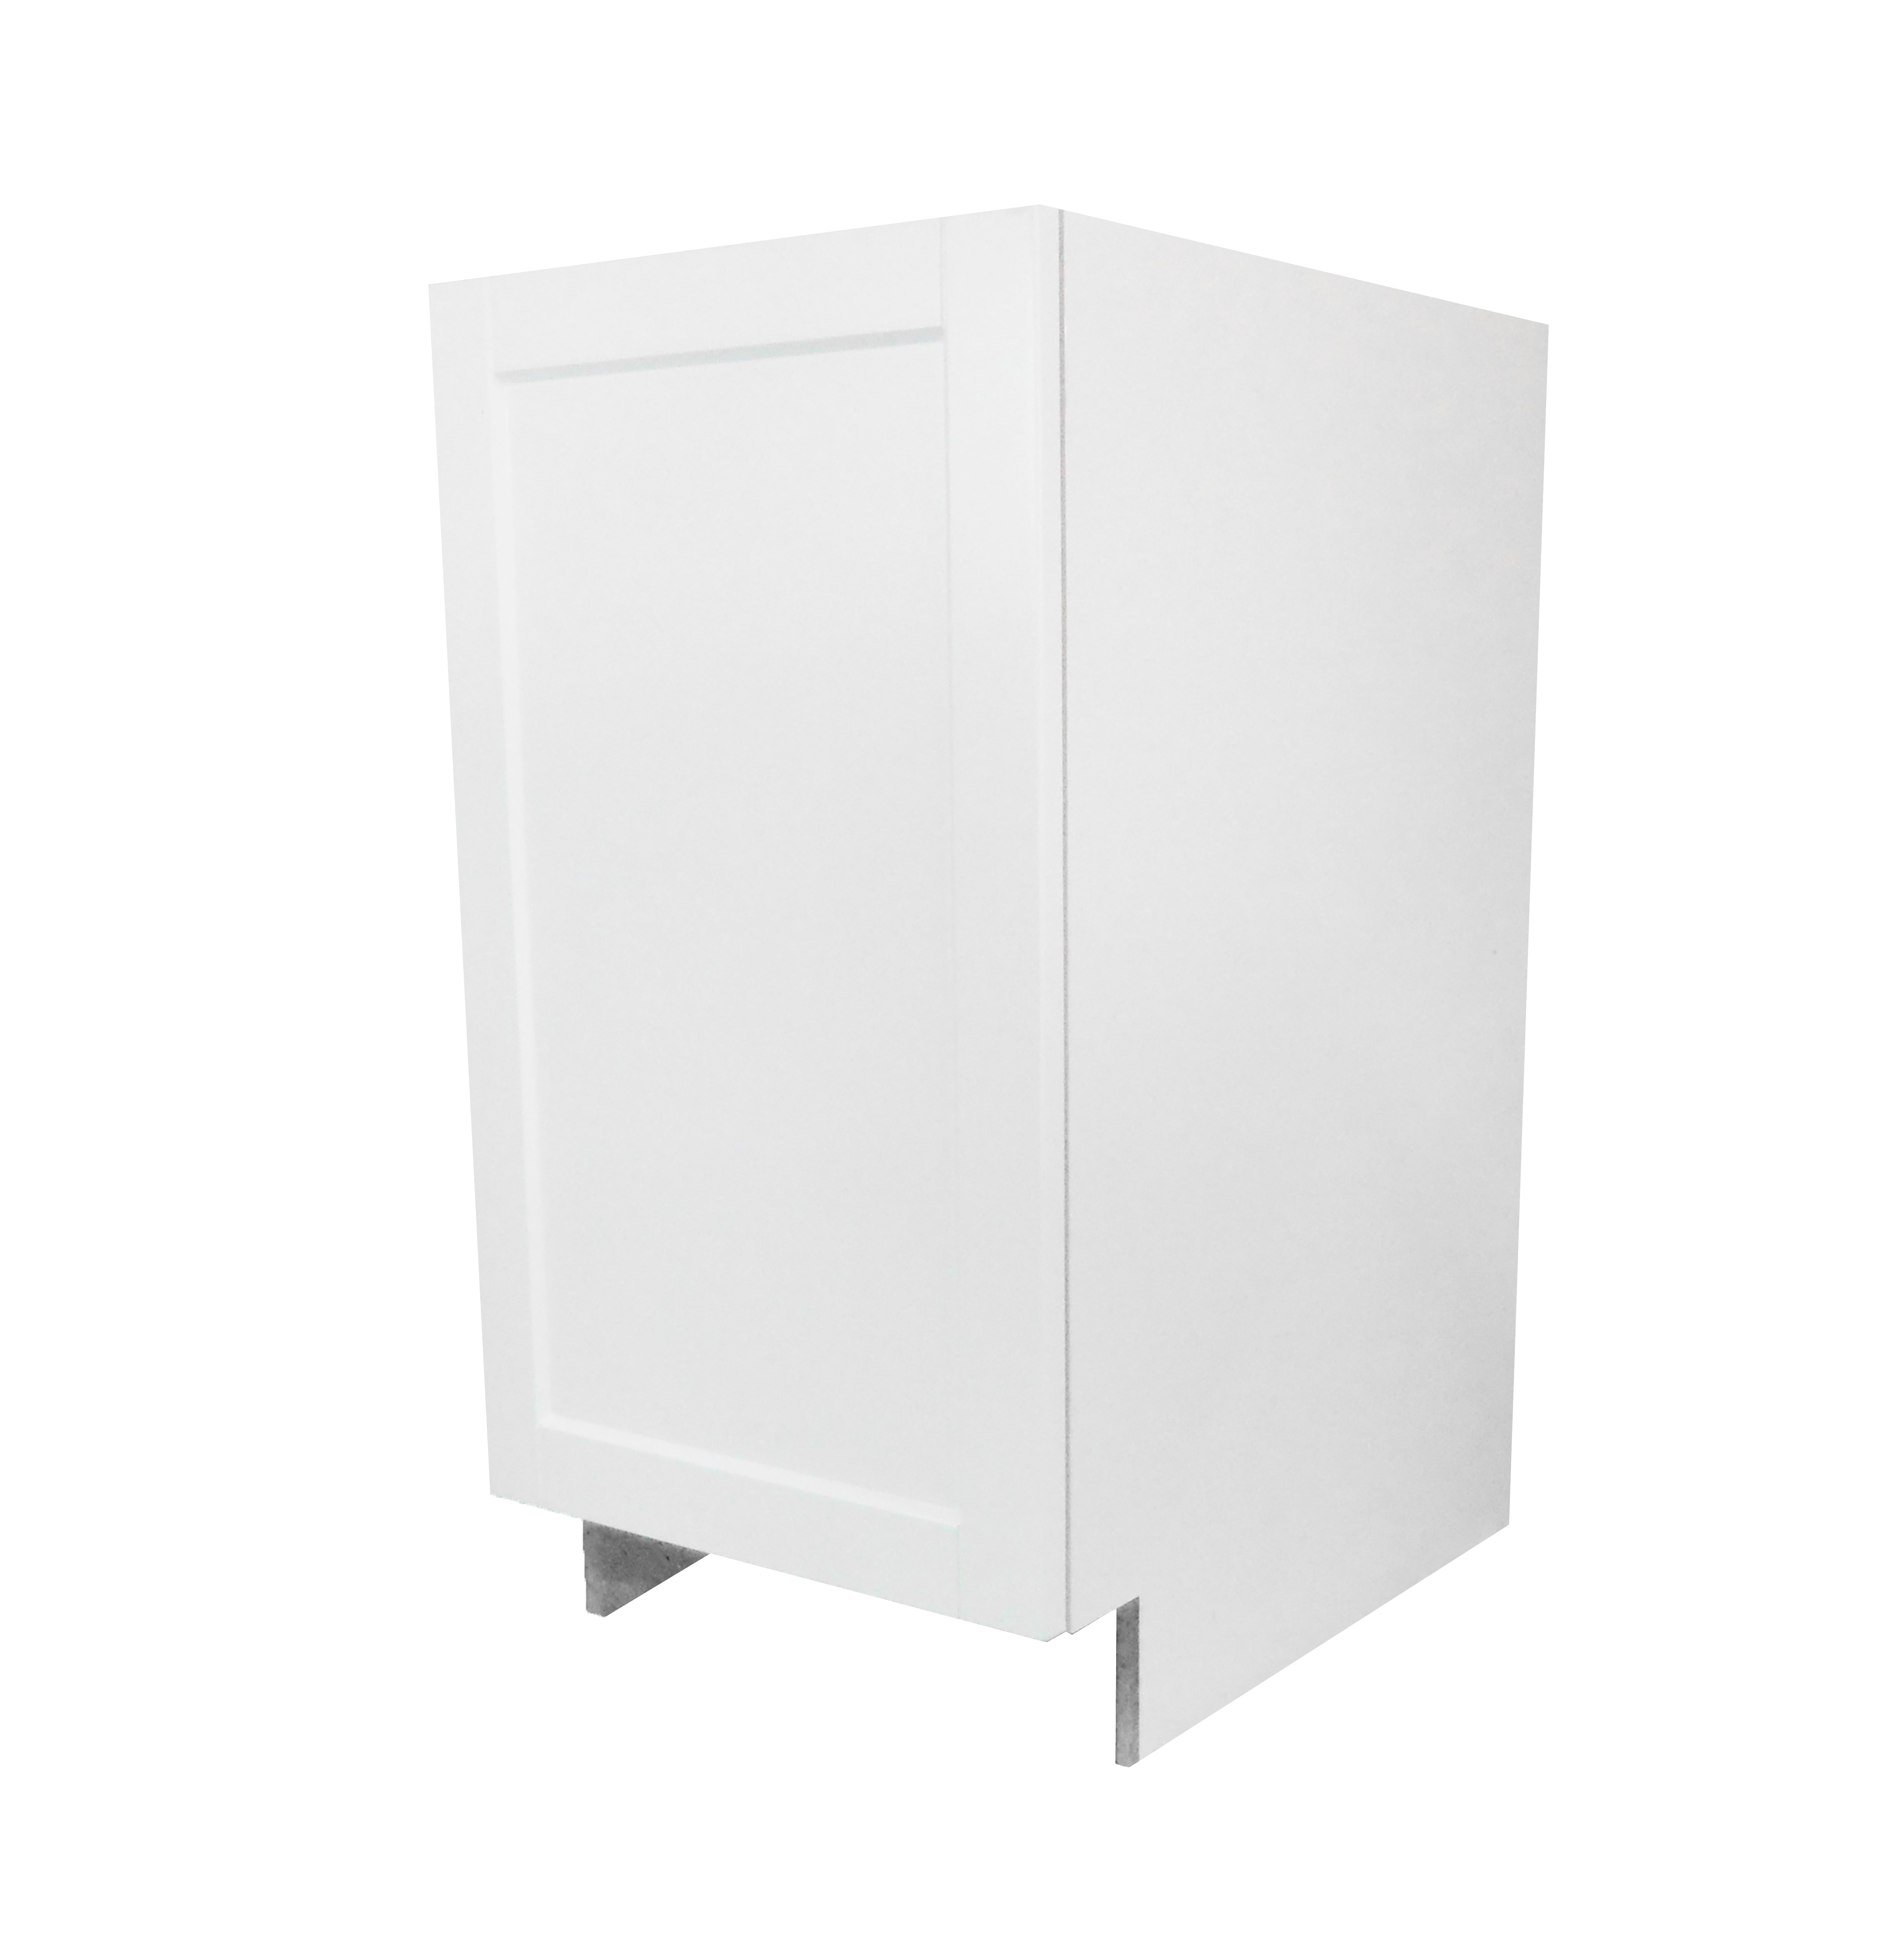 Base Cabinet With Door / Flat Panel White / 18 Solaire White 0